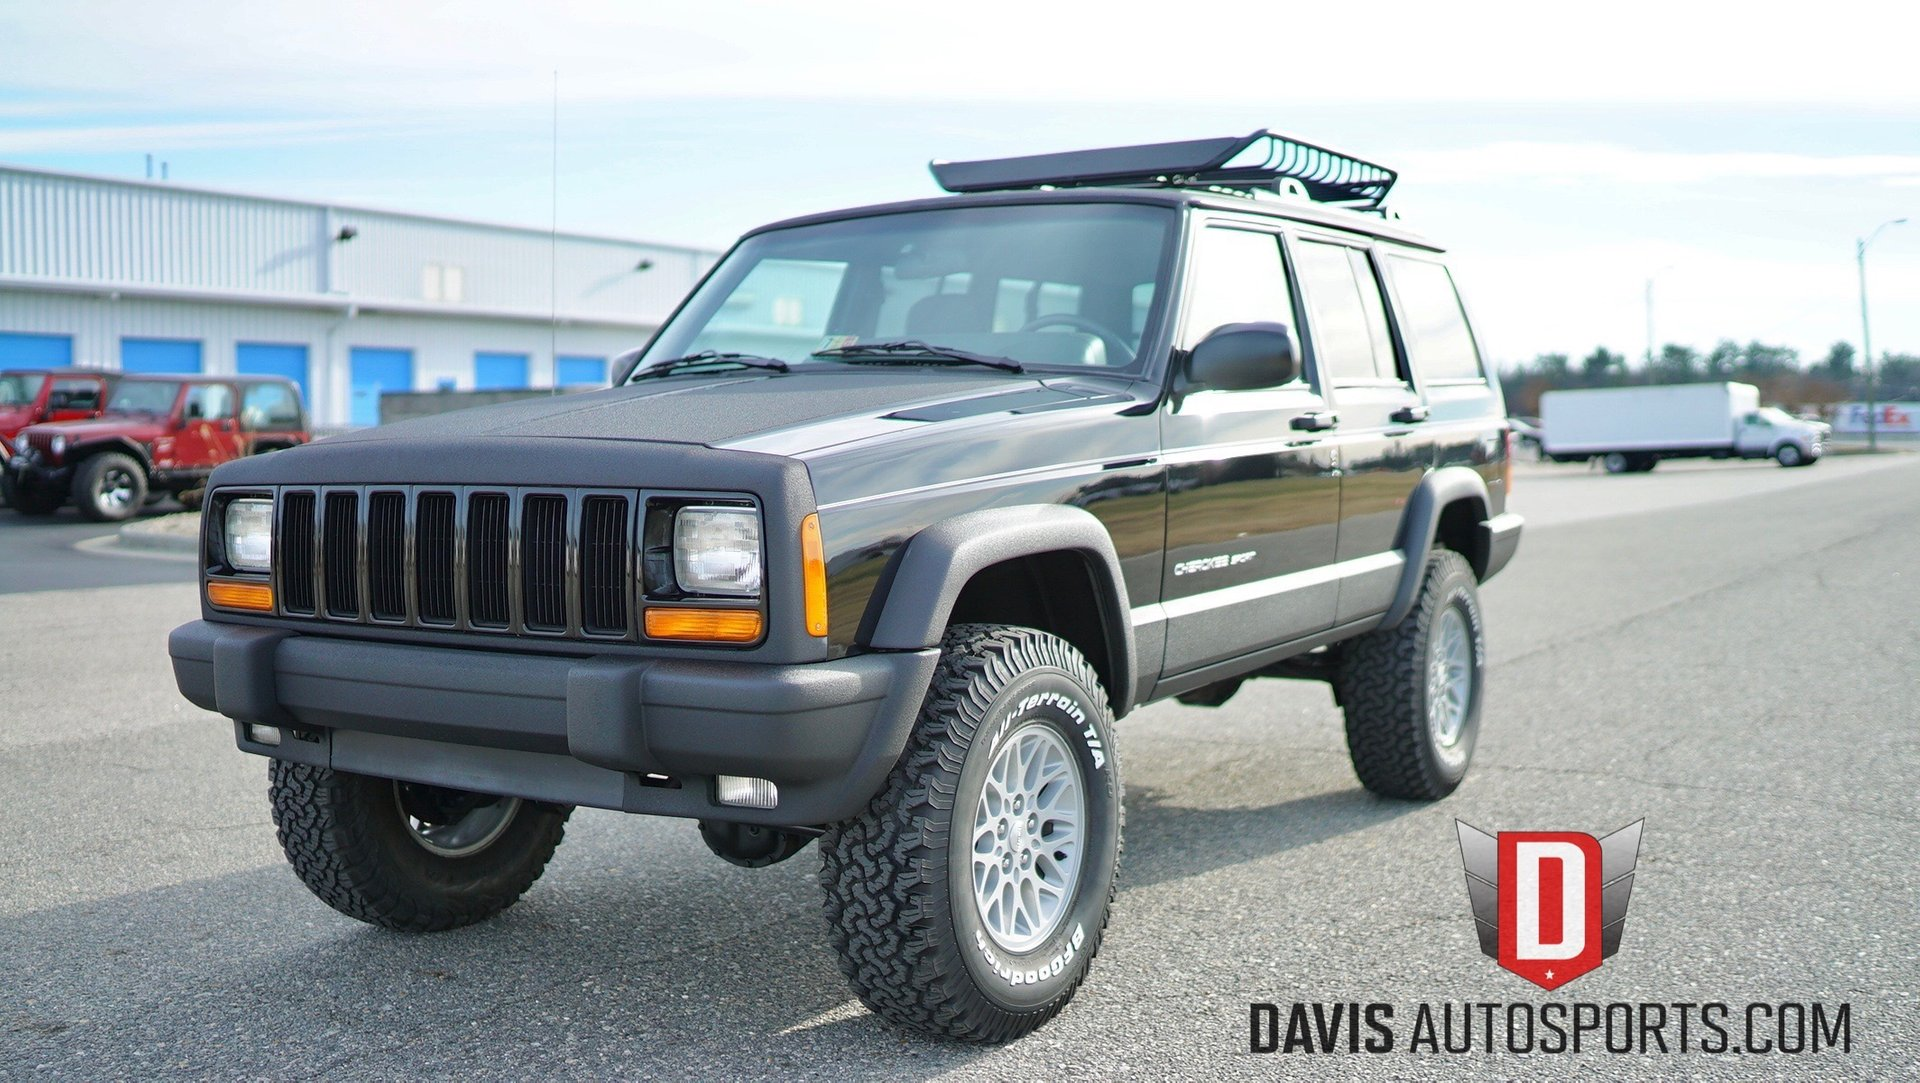 2001 jeep cherokee limited edition 4x4